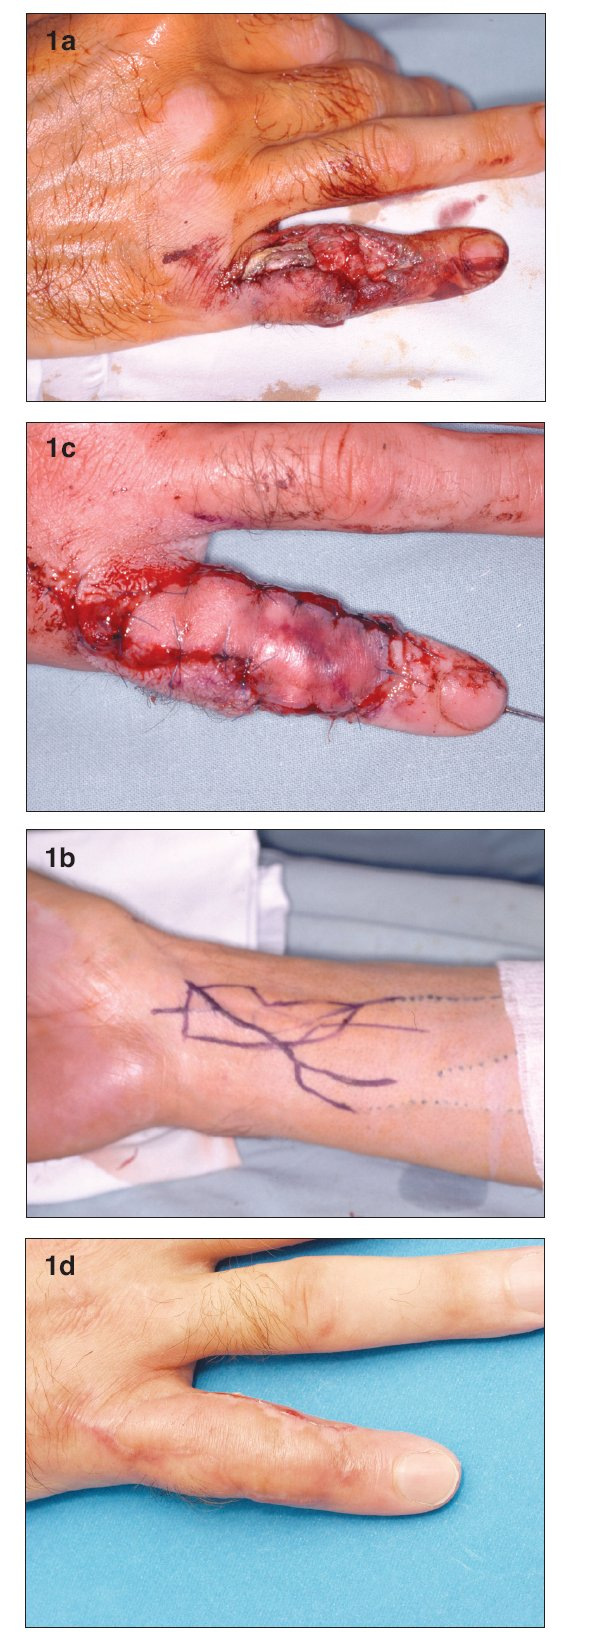 a. Defect with exposure of the proximal interphalangeal joint and loss of extensor tendon b. Design of the venous flap on the distal forearm c. Venous flap 2nd day post-op. Please note the degree of hyperemia is higher on the inflow (distal) part of the flap d. Flap completely healed 1 month post-op